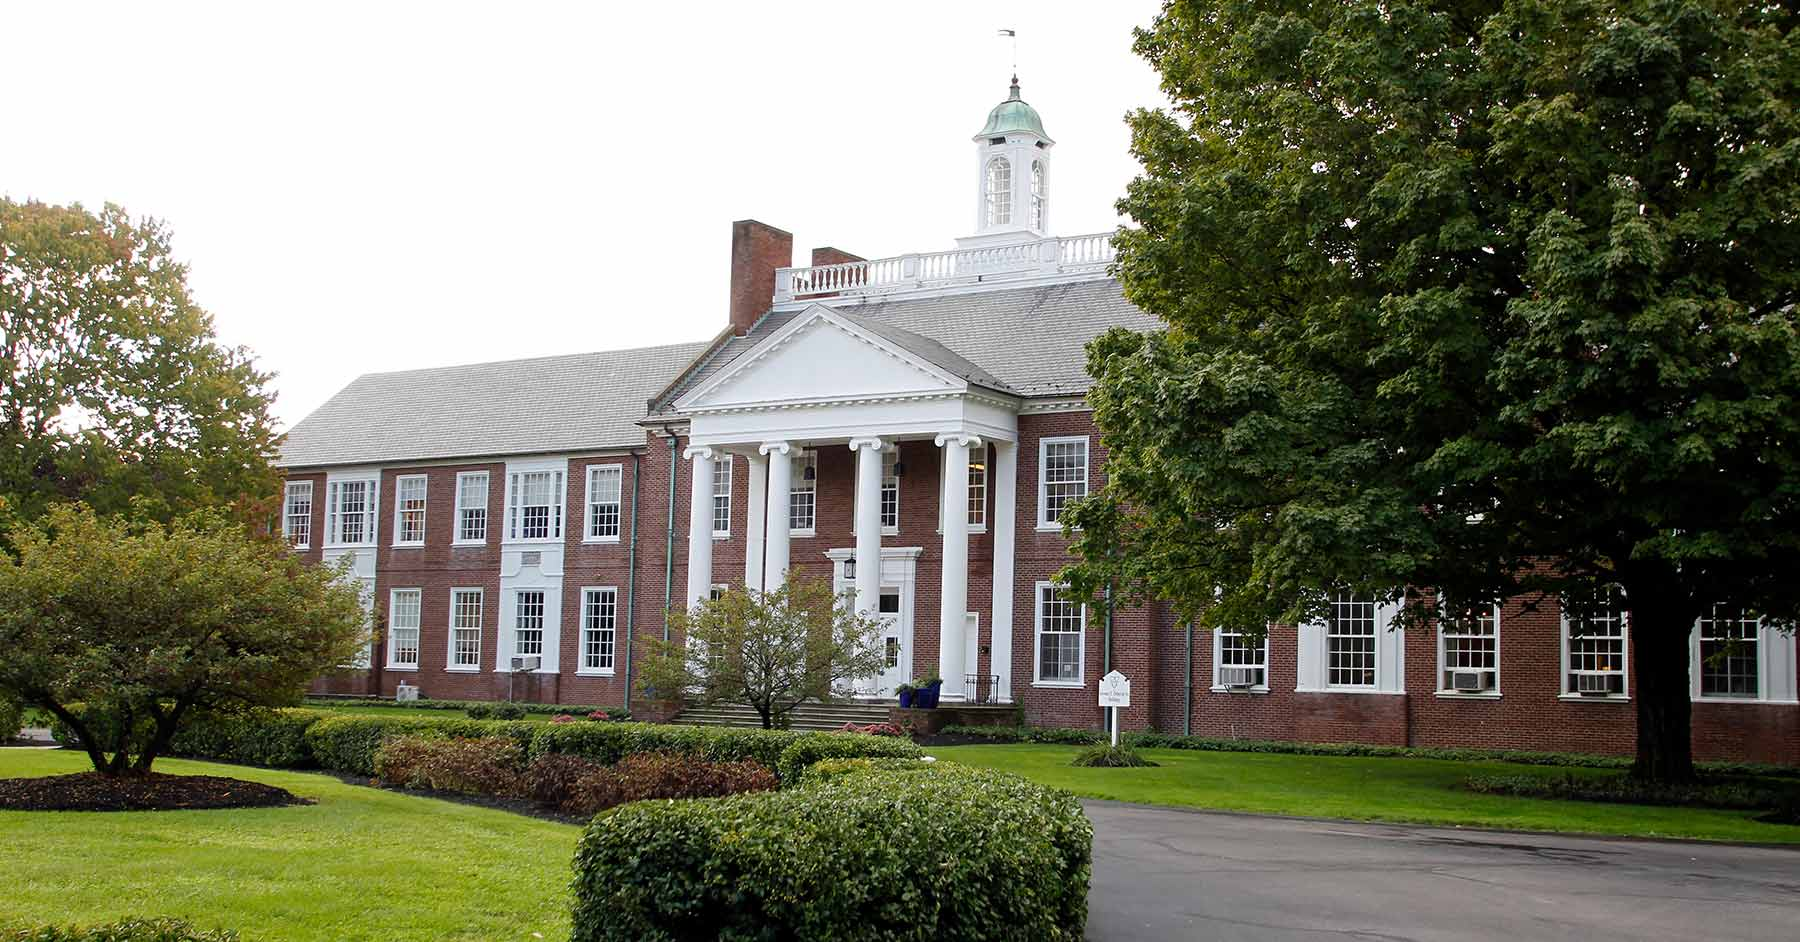 Andrews Osborne Academy in Willoughby, OH - Niche